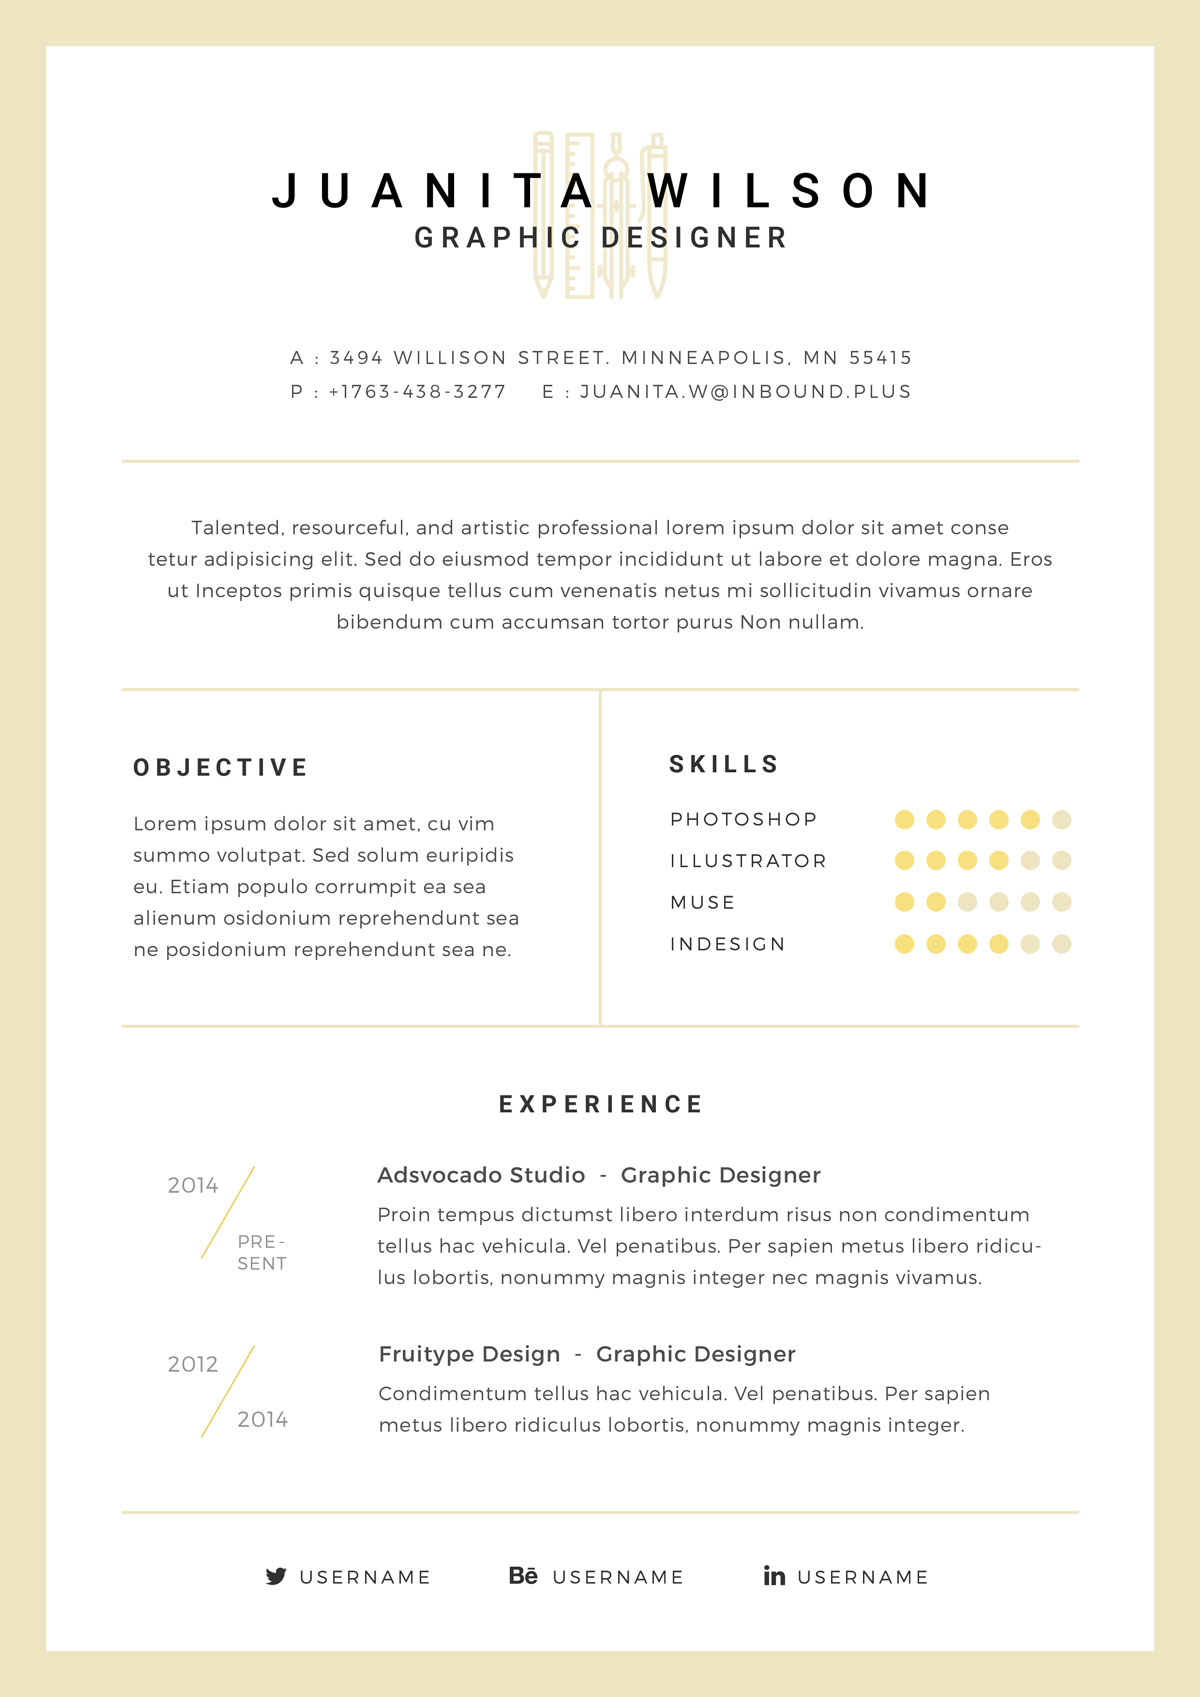 Free Clean Resume Template In Psd For Graphic Designers Good Resume